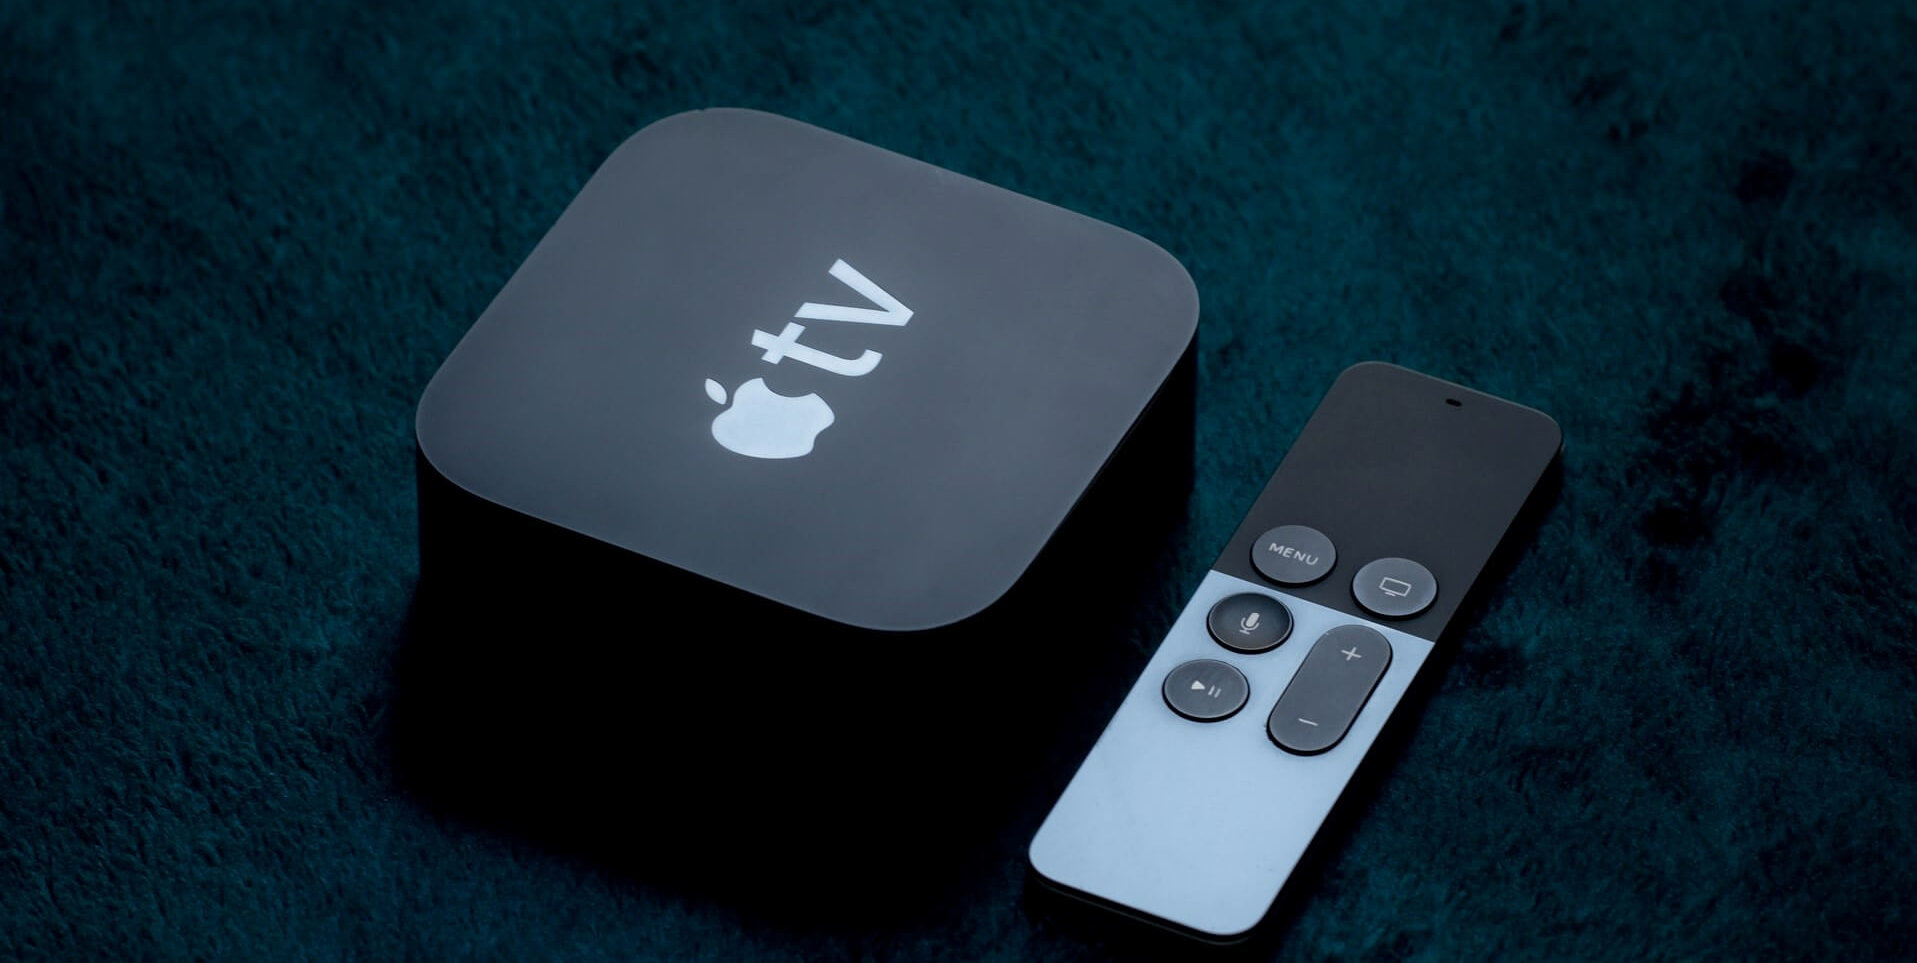 apple tv dongle and remote